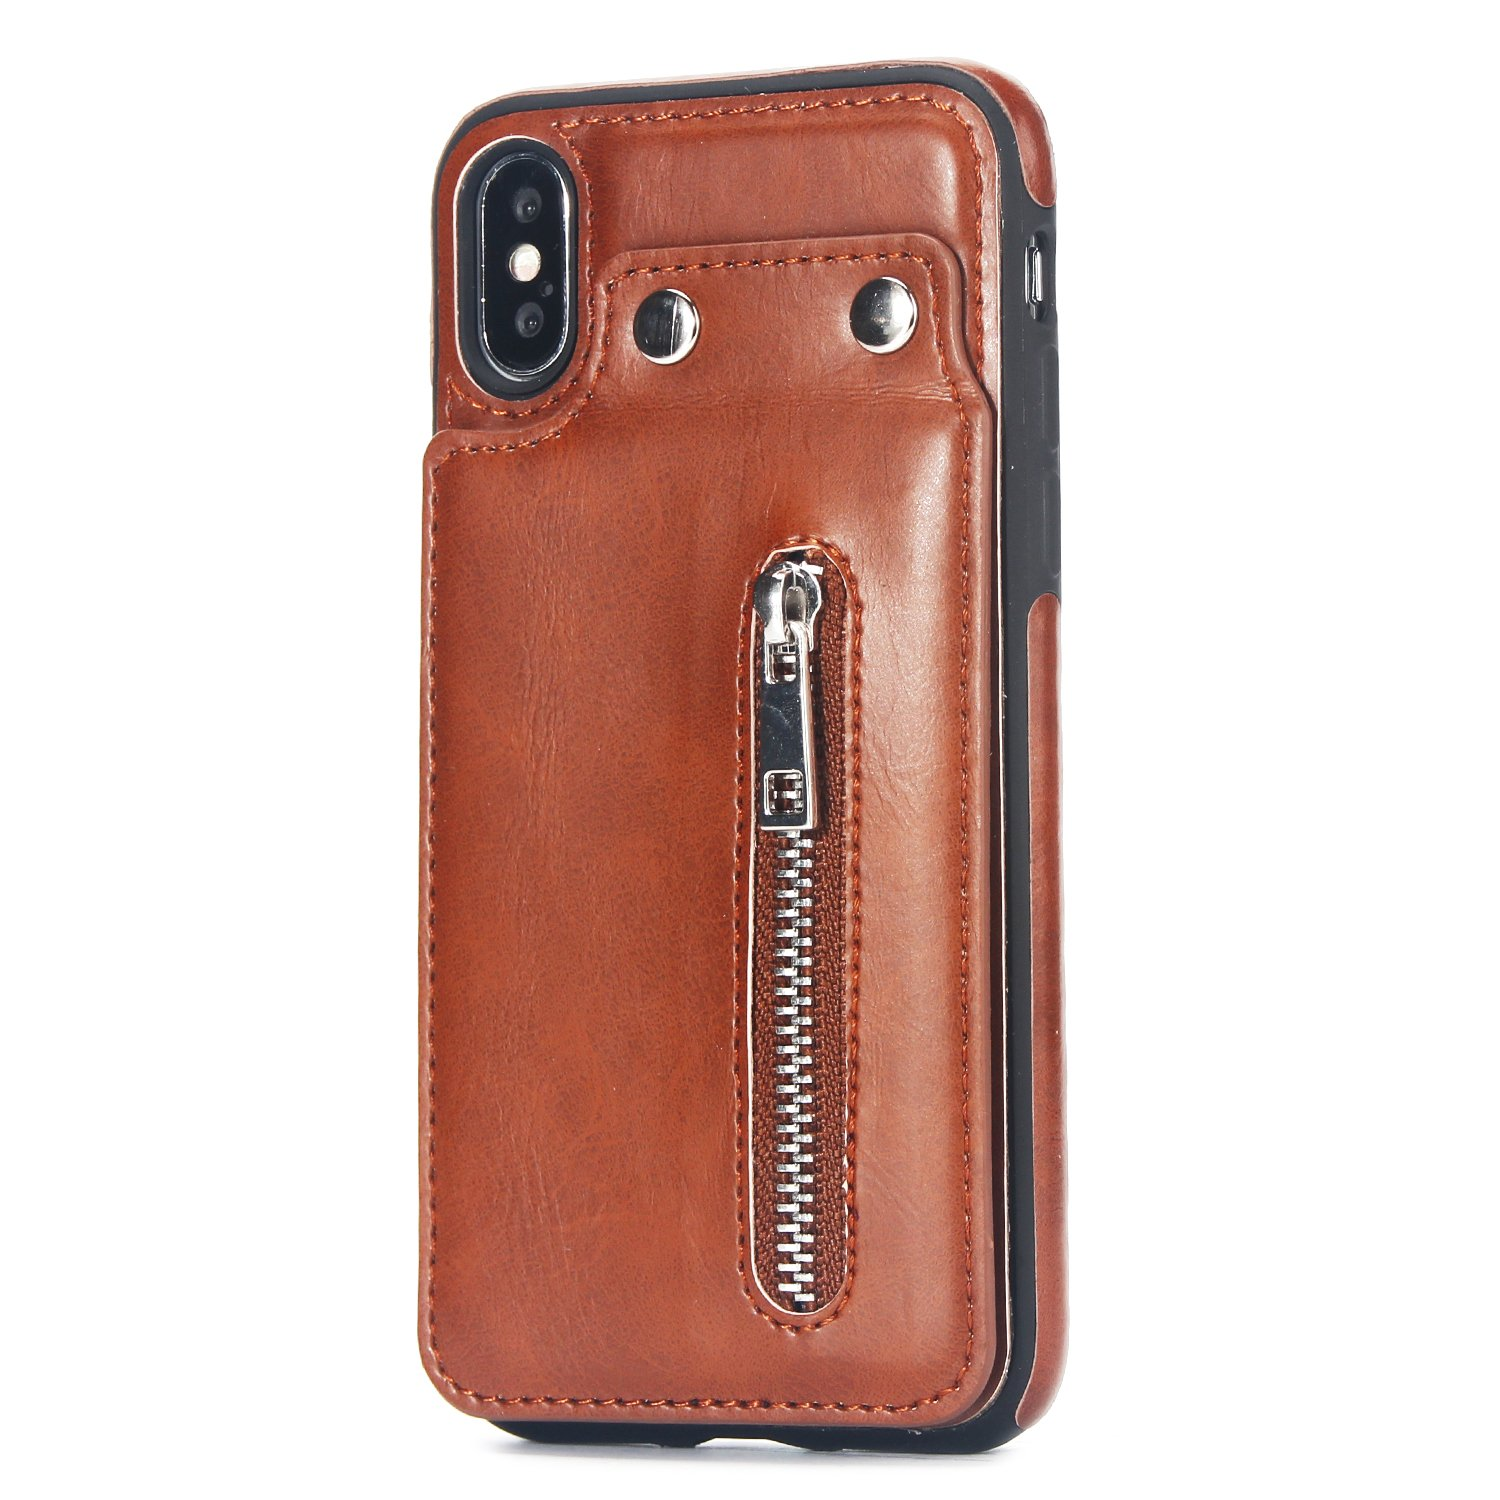 Case for iPhone X/iPhone XS Flip Case Premium PU Leather Wallet Cover with Card Holder Money Pocket Durable Shockproof Protective Cover for iPhone X/XS,Brown by ikasus